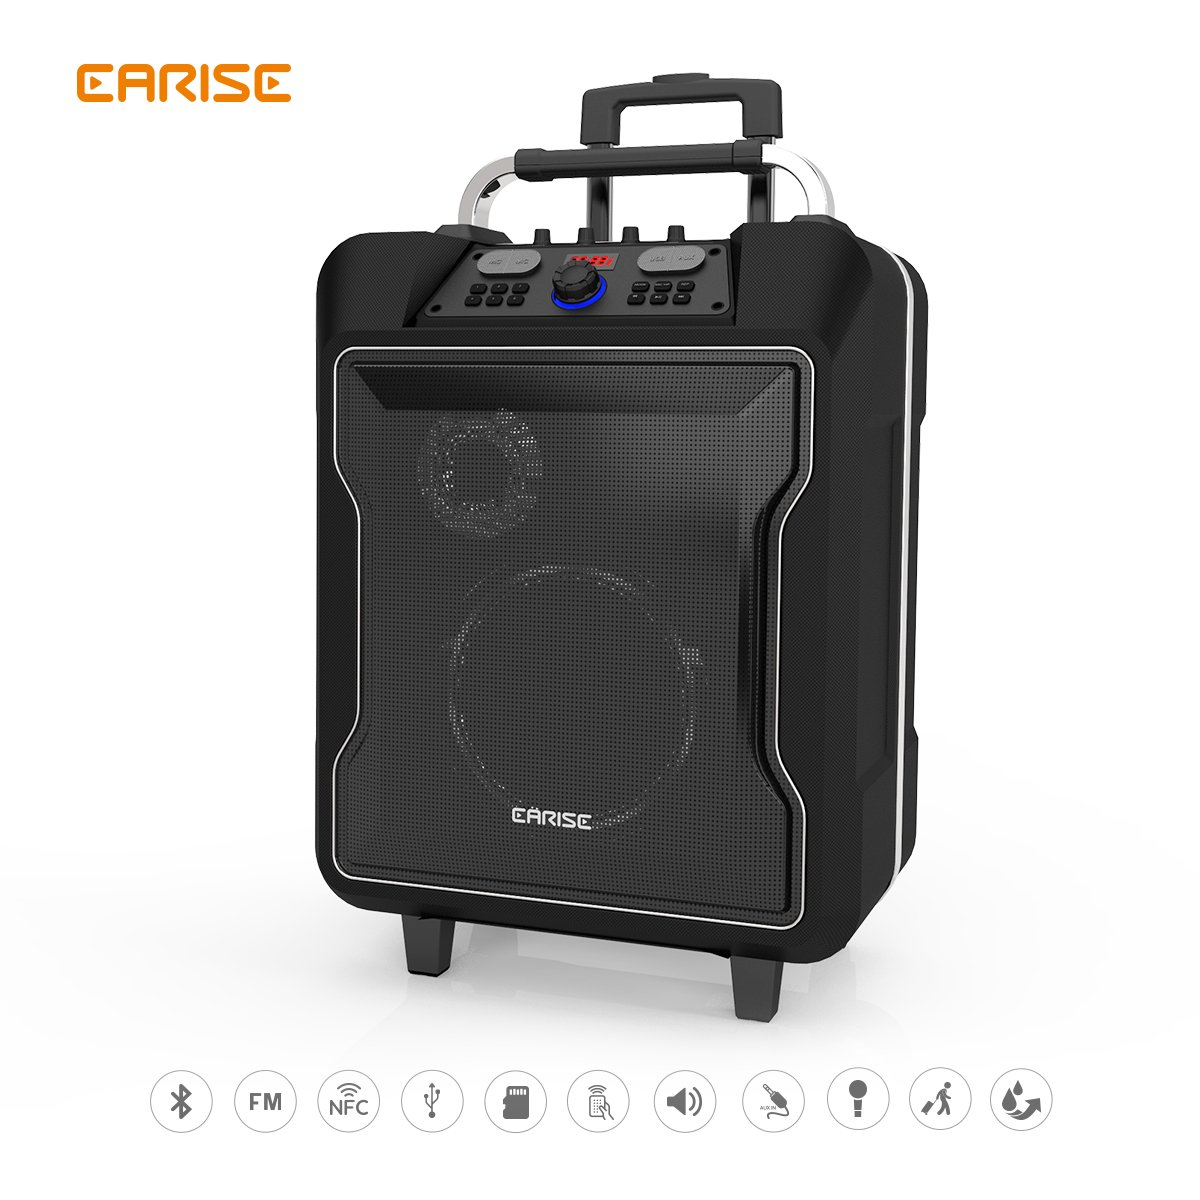 EARISE M60 Audio PA System Bluetooth Rolling Speaker Rechargeable 10''+3'' Subwoofer with Wireless Microphone, Remote Control, AUX/TF/USB/NFC, Mic/Guitar Jack Telescoping Handle & Wheels